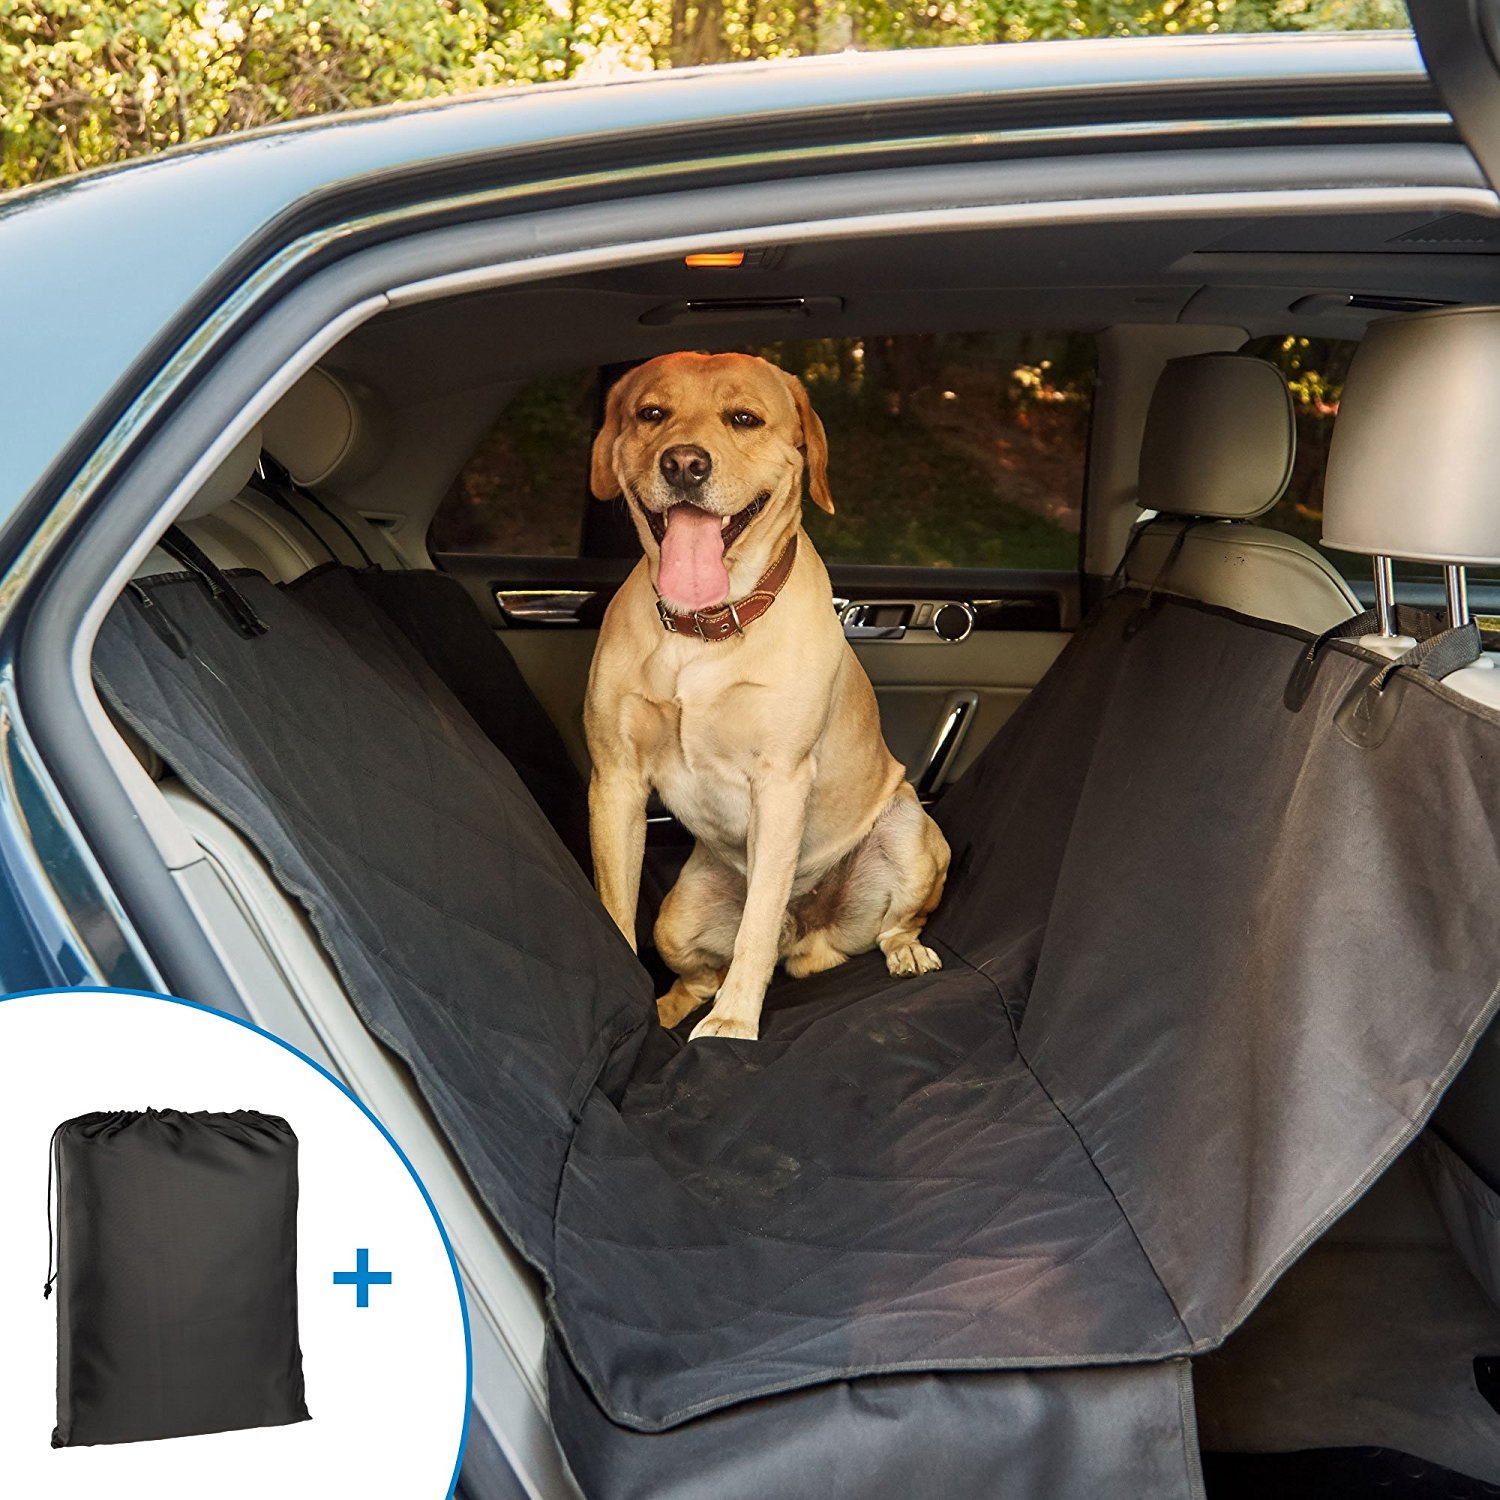 Dog Seat Cover for Back Seat - Pet Seat Covers - Car Seat Covers for Dogs - Large Dog Hammock with Sides - Waterproof Non-Slip with Storage Bag